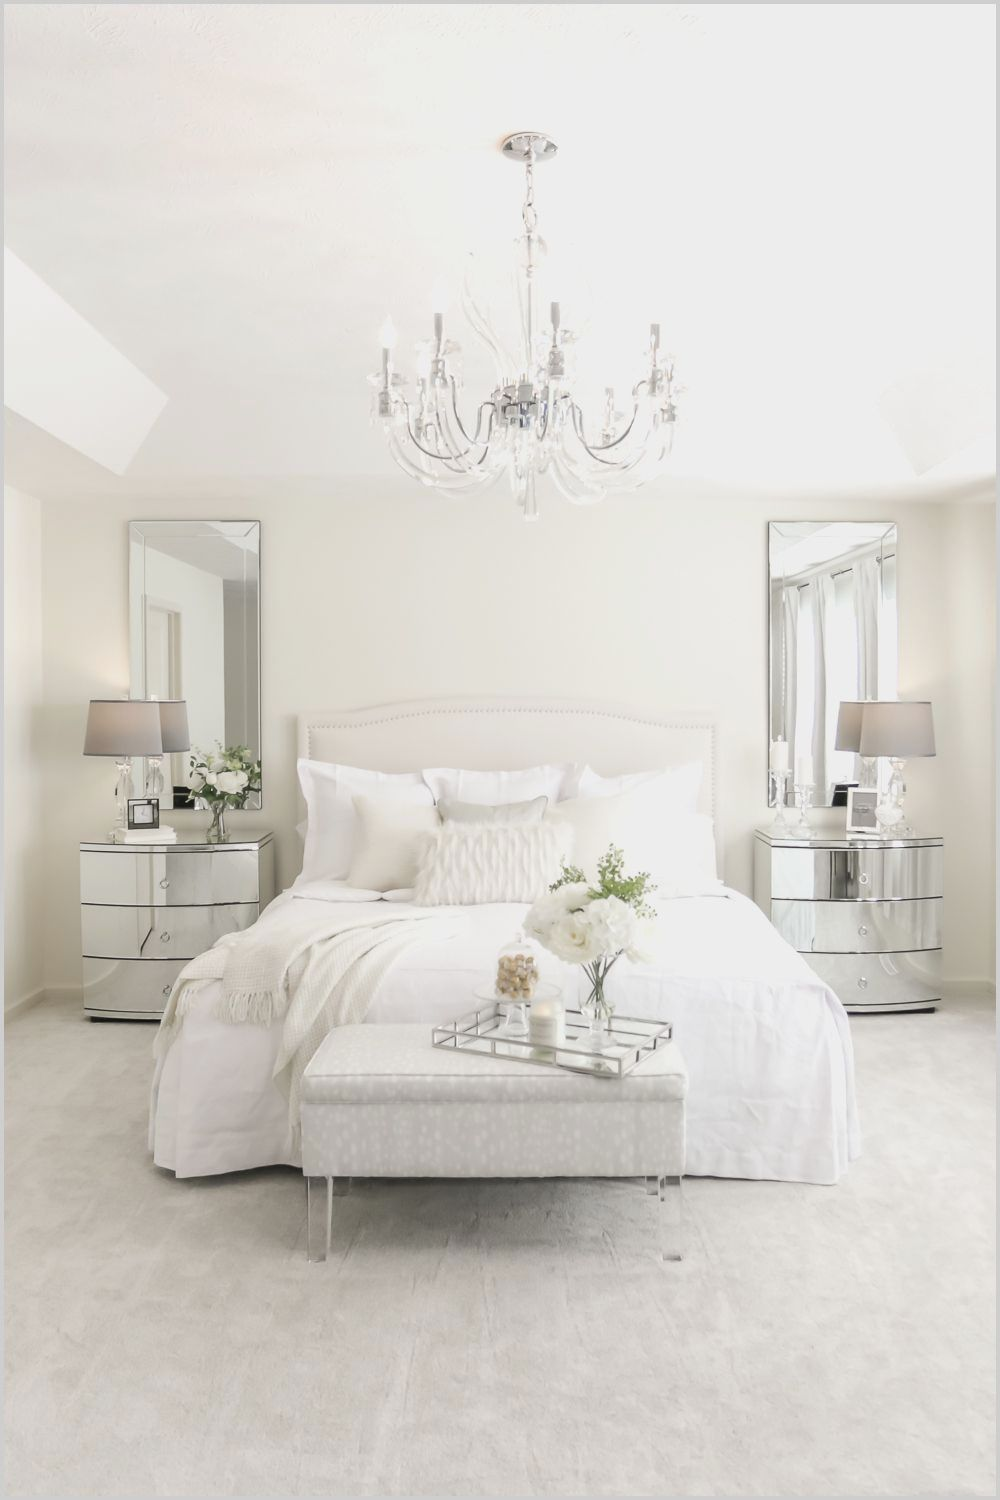 Pretty All White Bedrooms In 2020 Small White Bedrooms White Bedroom Set White Bedroom Decor